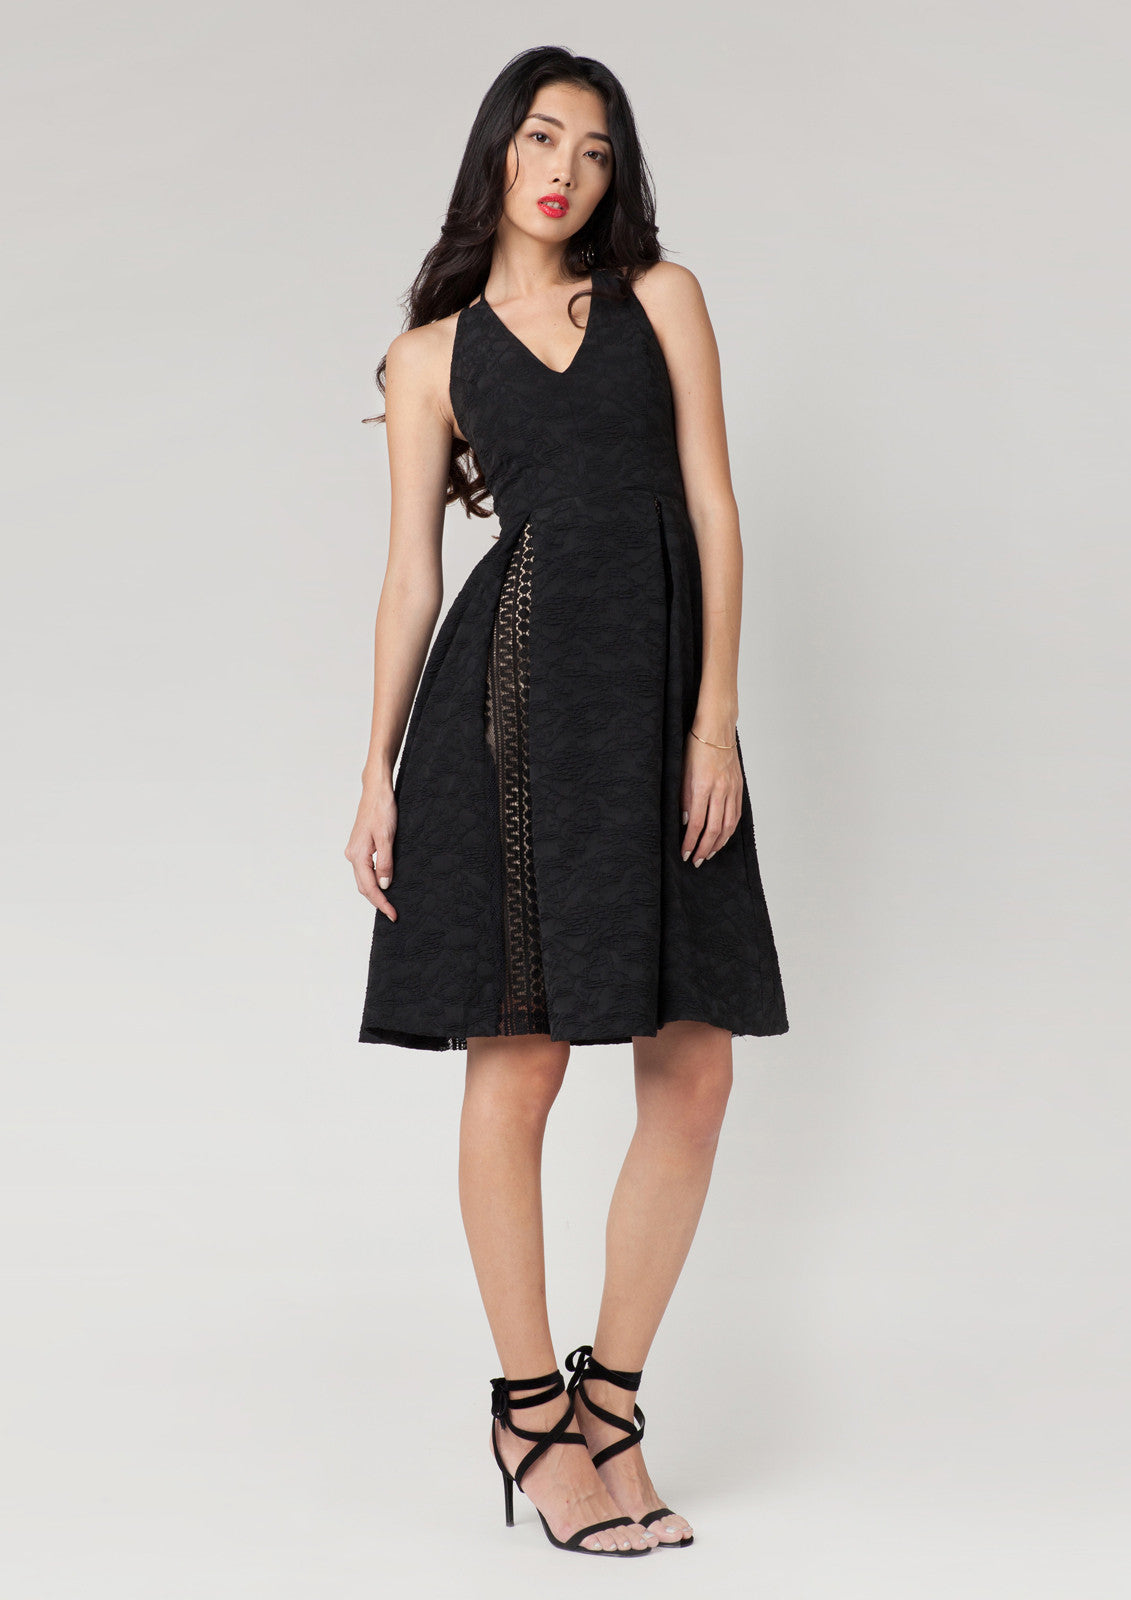 Marcessa Jacquard Dress (Black)